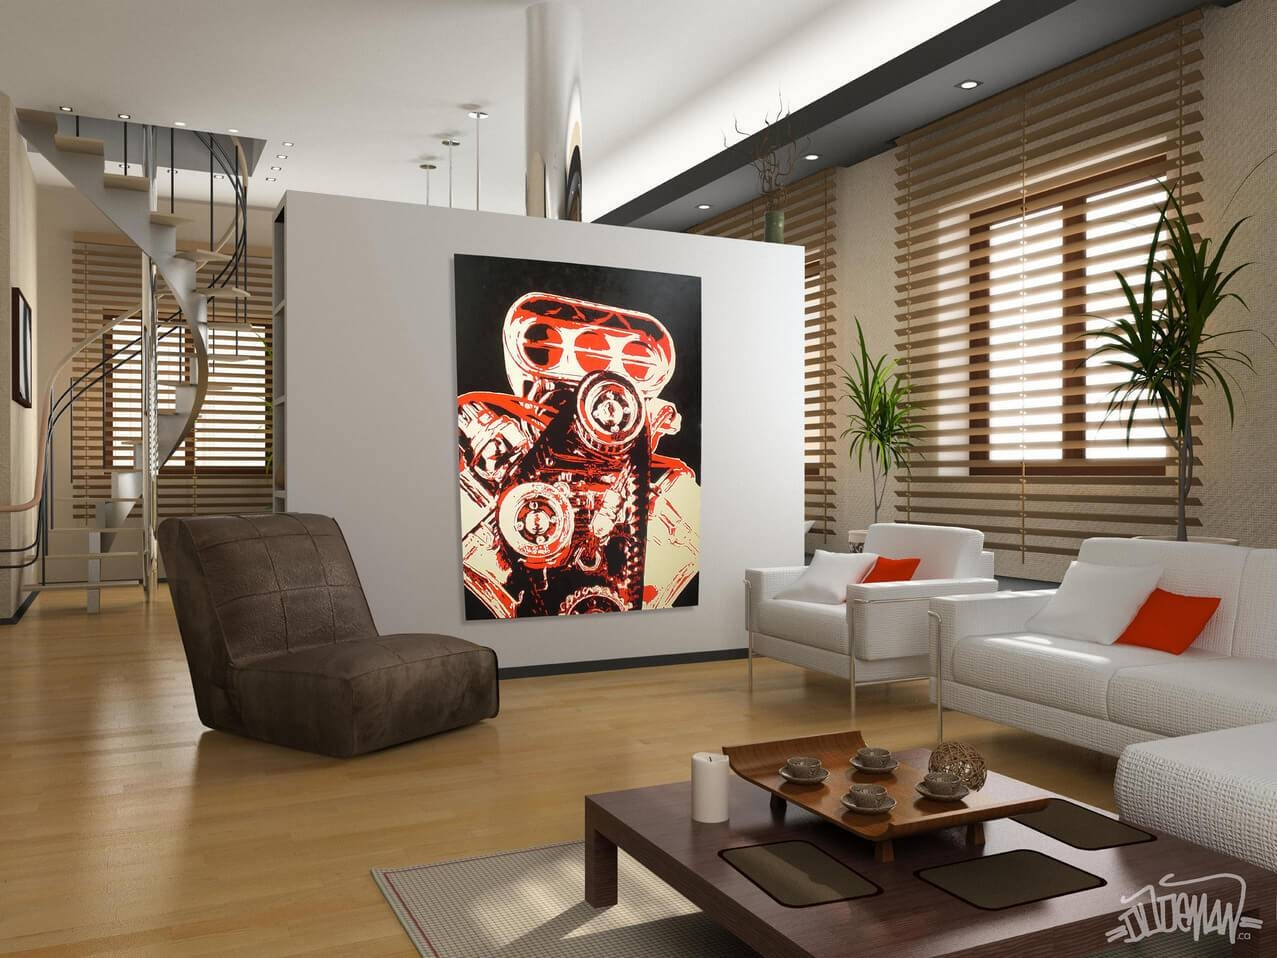 Living Room: – Wall Art For Living Room | Wall Art For A Small With Best And Newest Exclusive Wall Art (View 14 of 20)